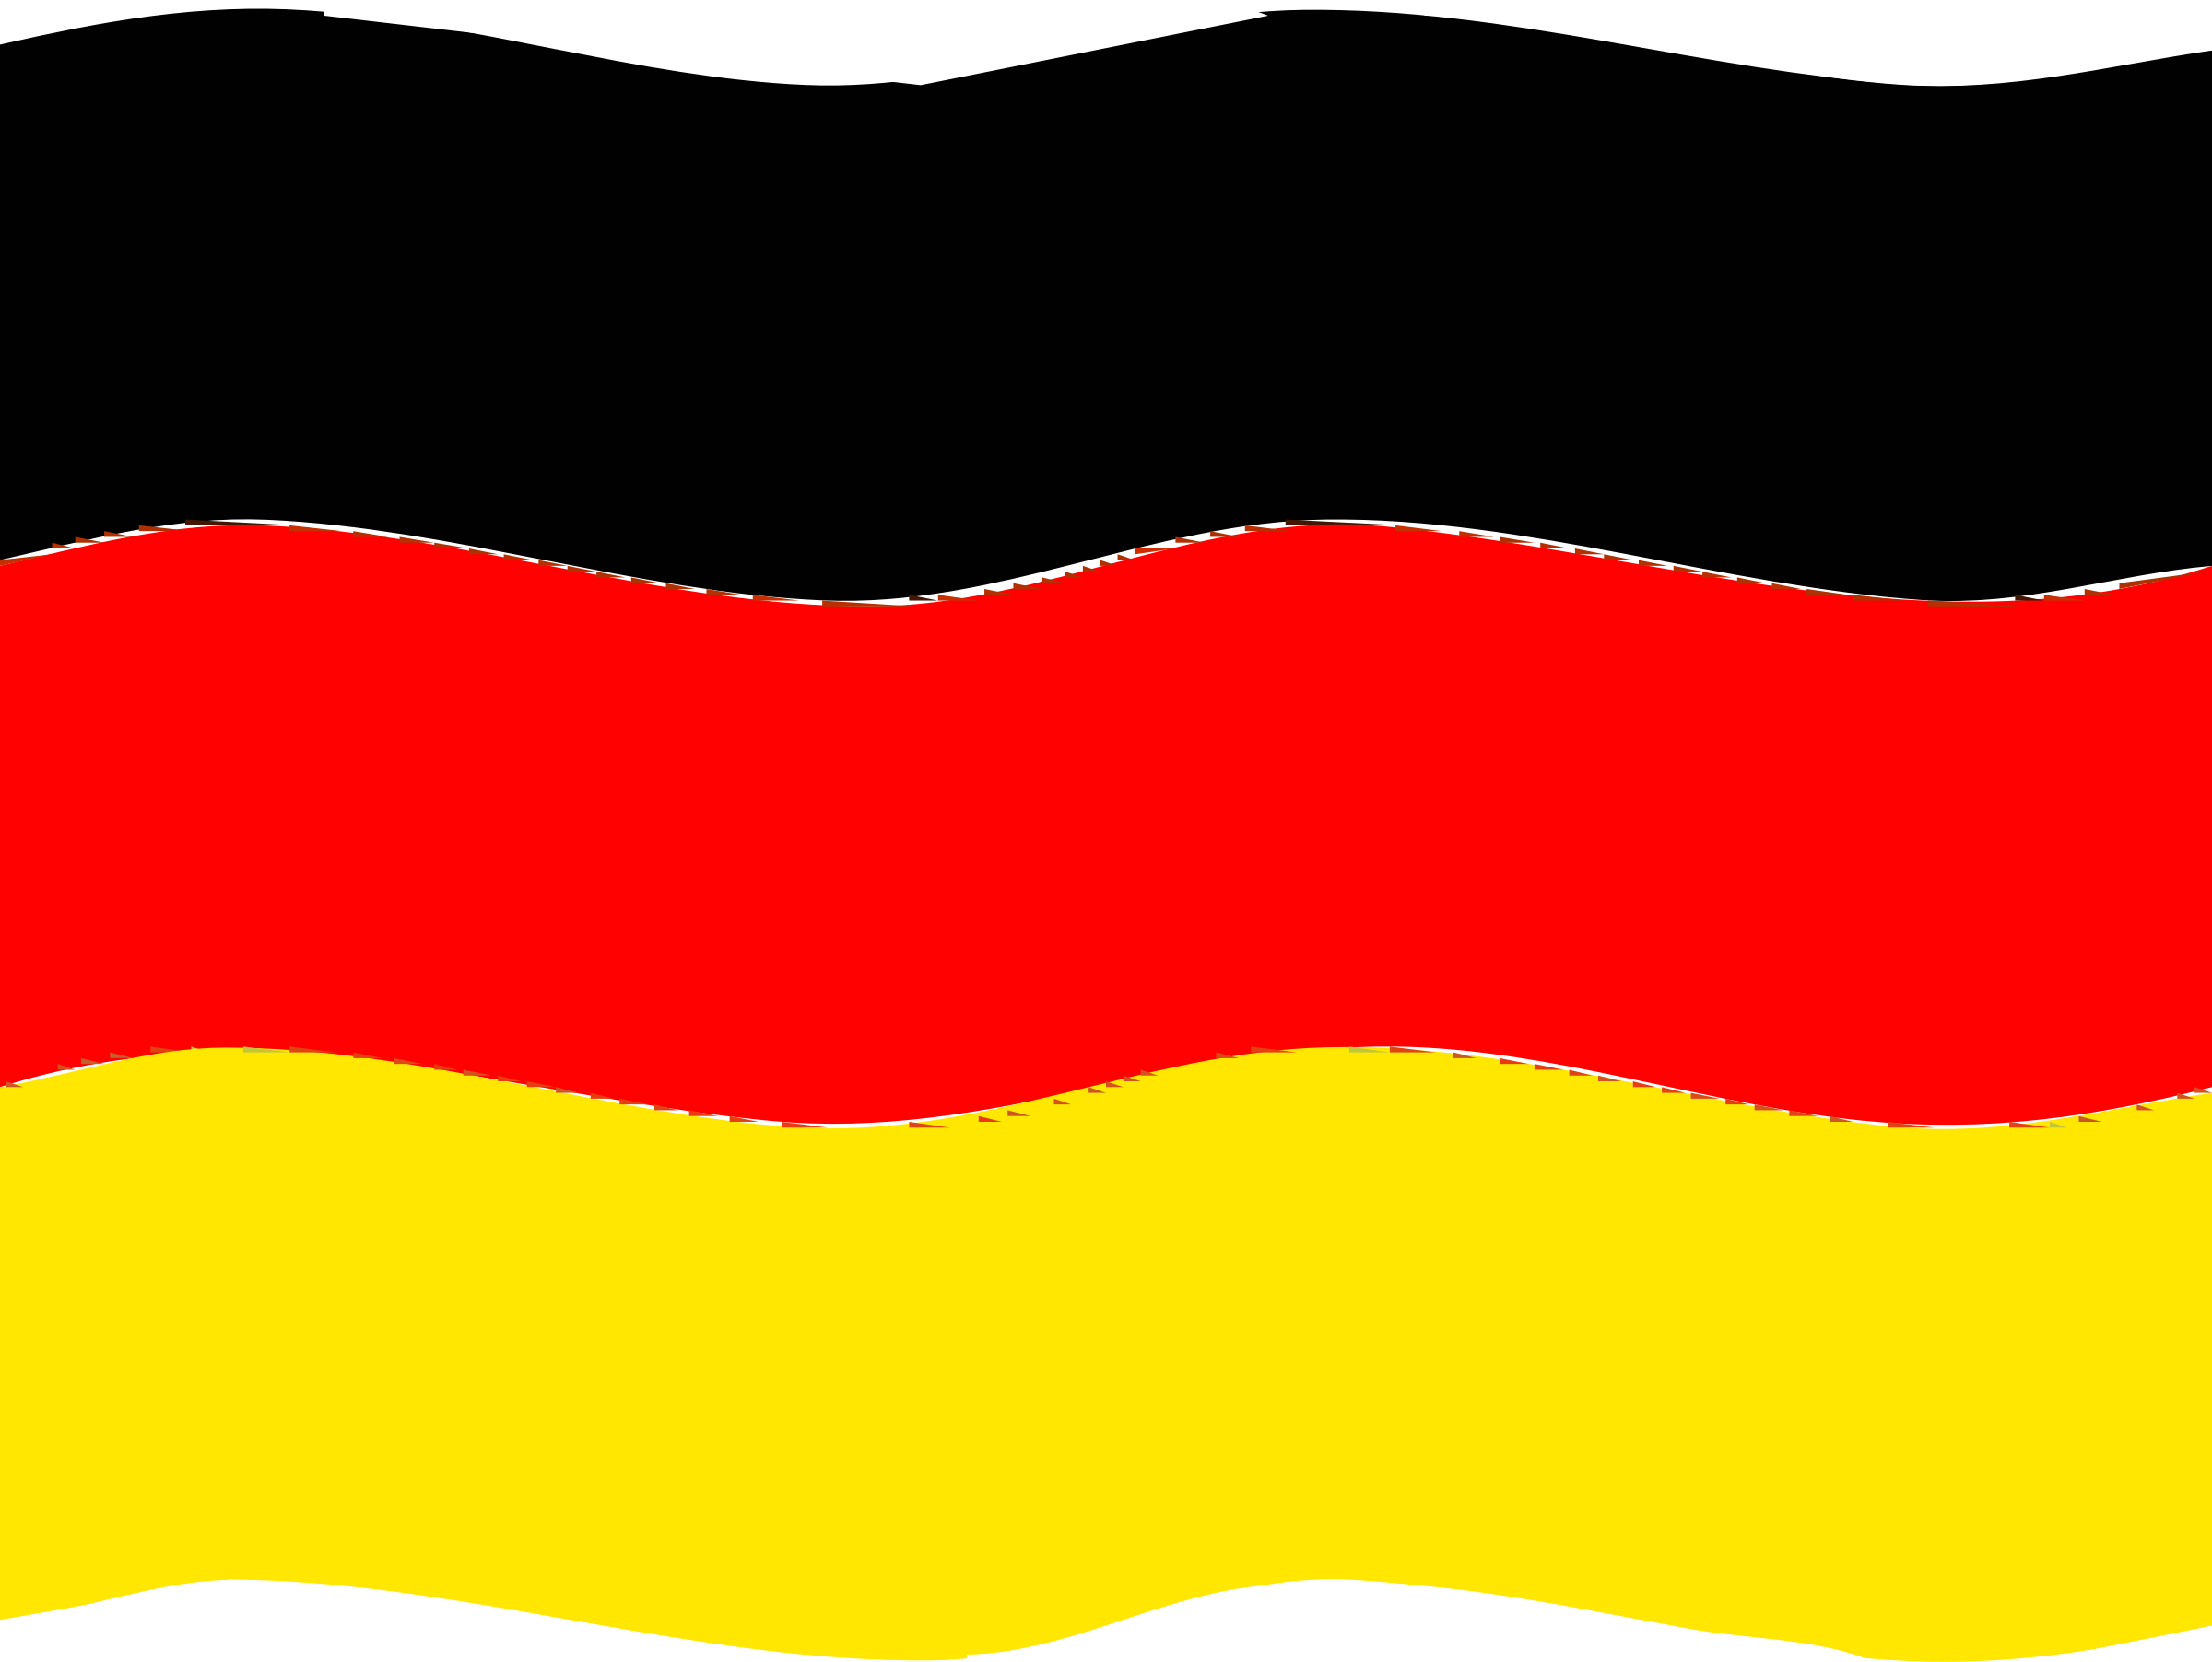 Flag of Germany wave by Joesph